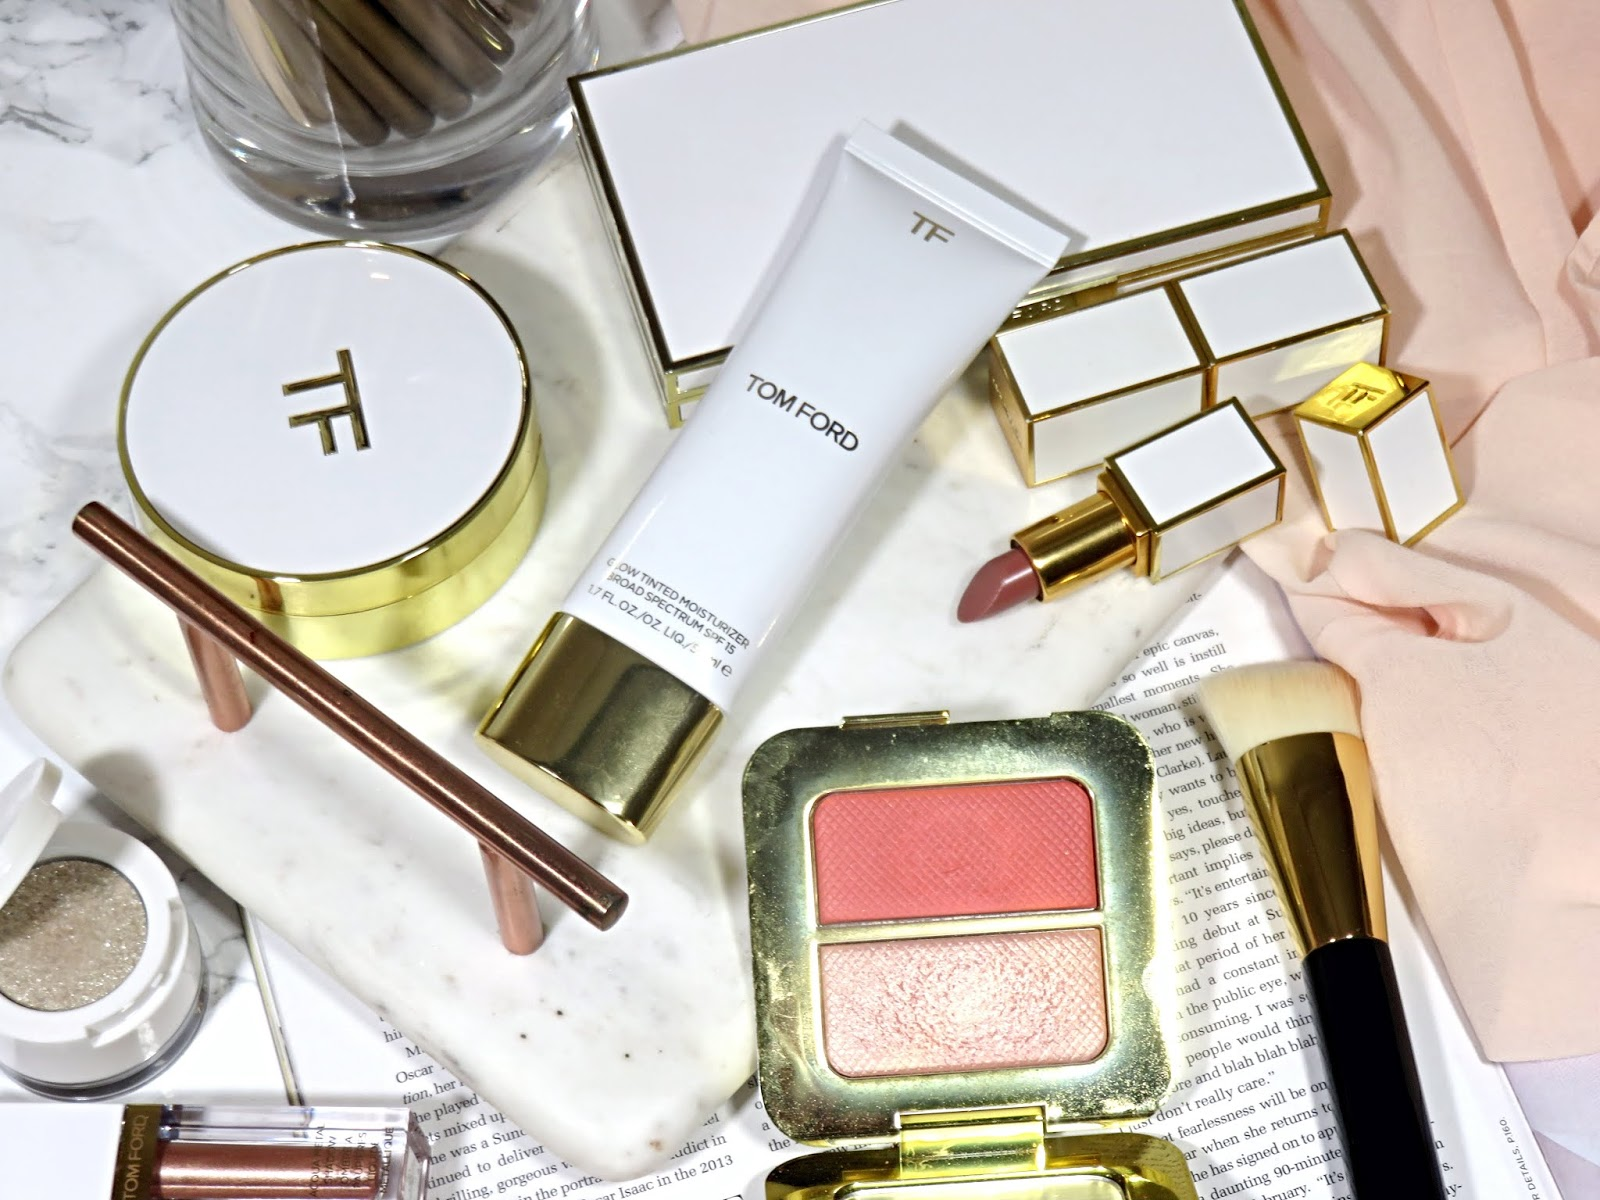 Tom Ford Glow Tinted Moisturizer SPF 15 Review and Swatches